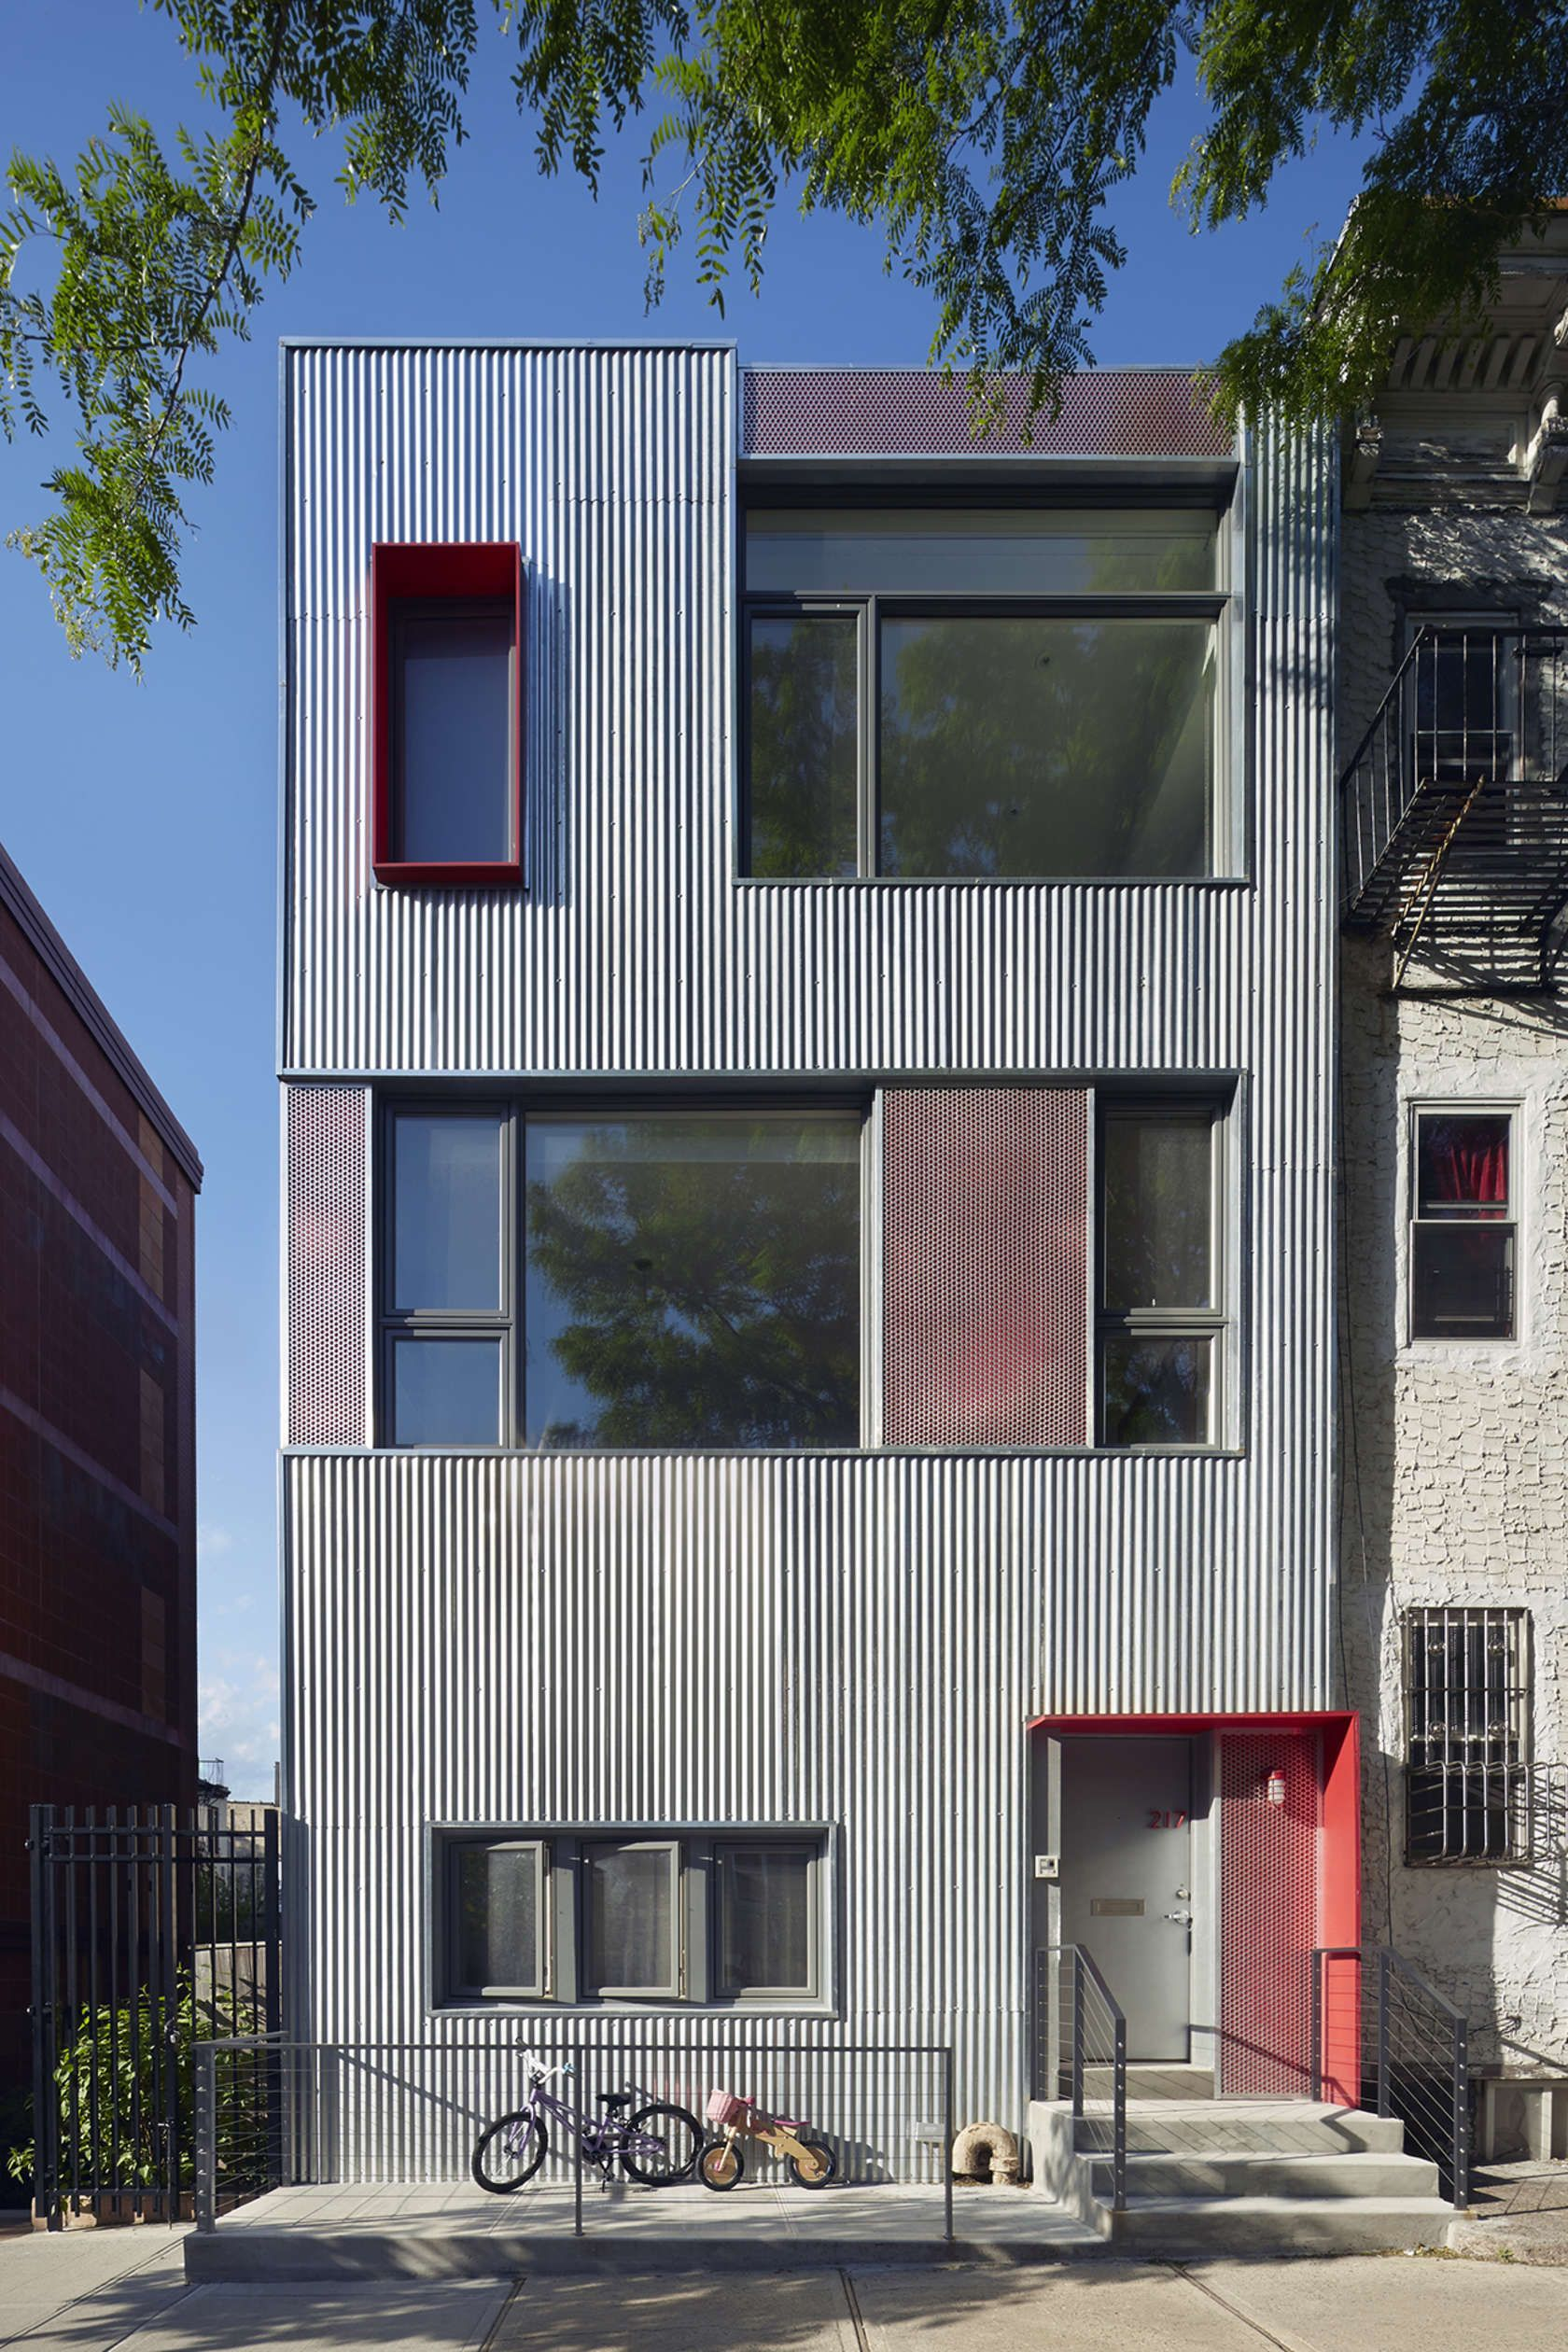 Situated At The Edge Of Ever Expanding Gentrified Brooklyn In South Park Slope This Renovation Maximizes The Modern Townhouse Architecture Architecture Design